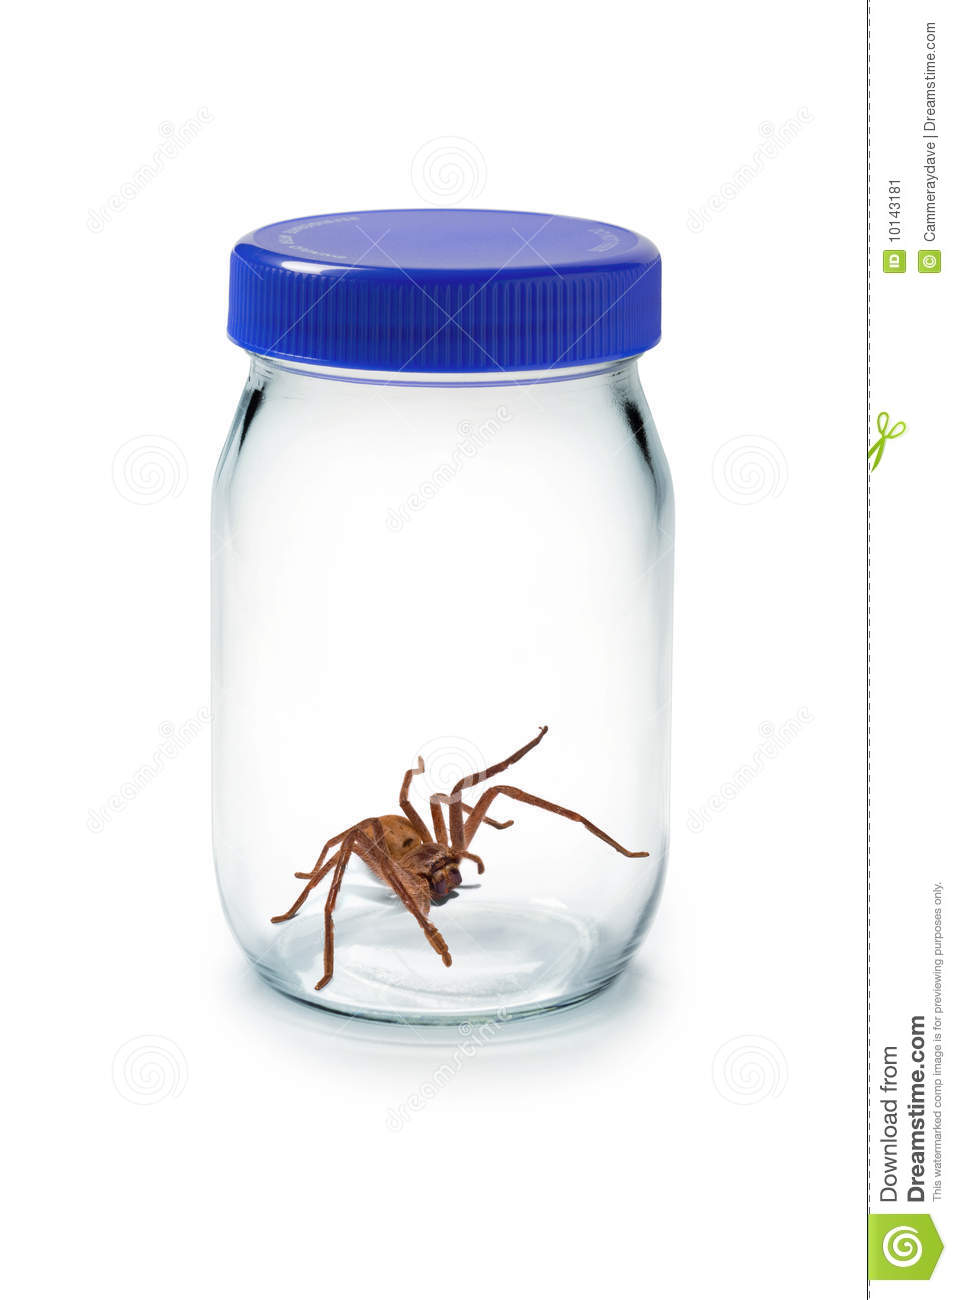 Spider Glass Jar Pest